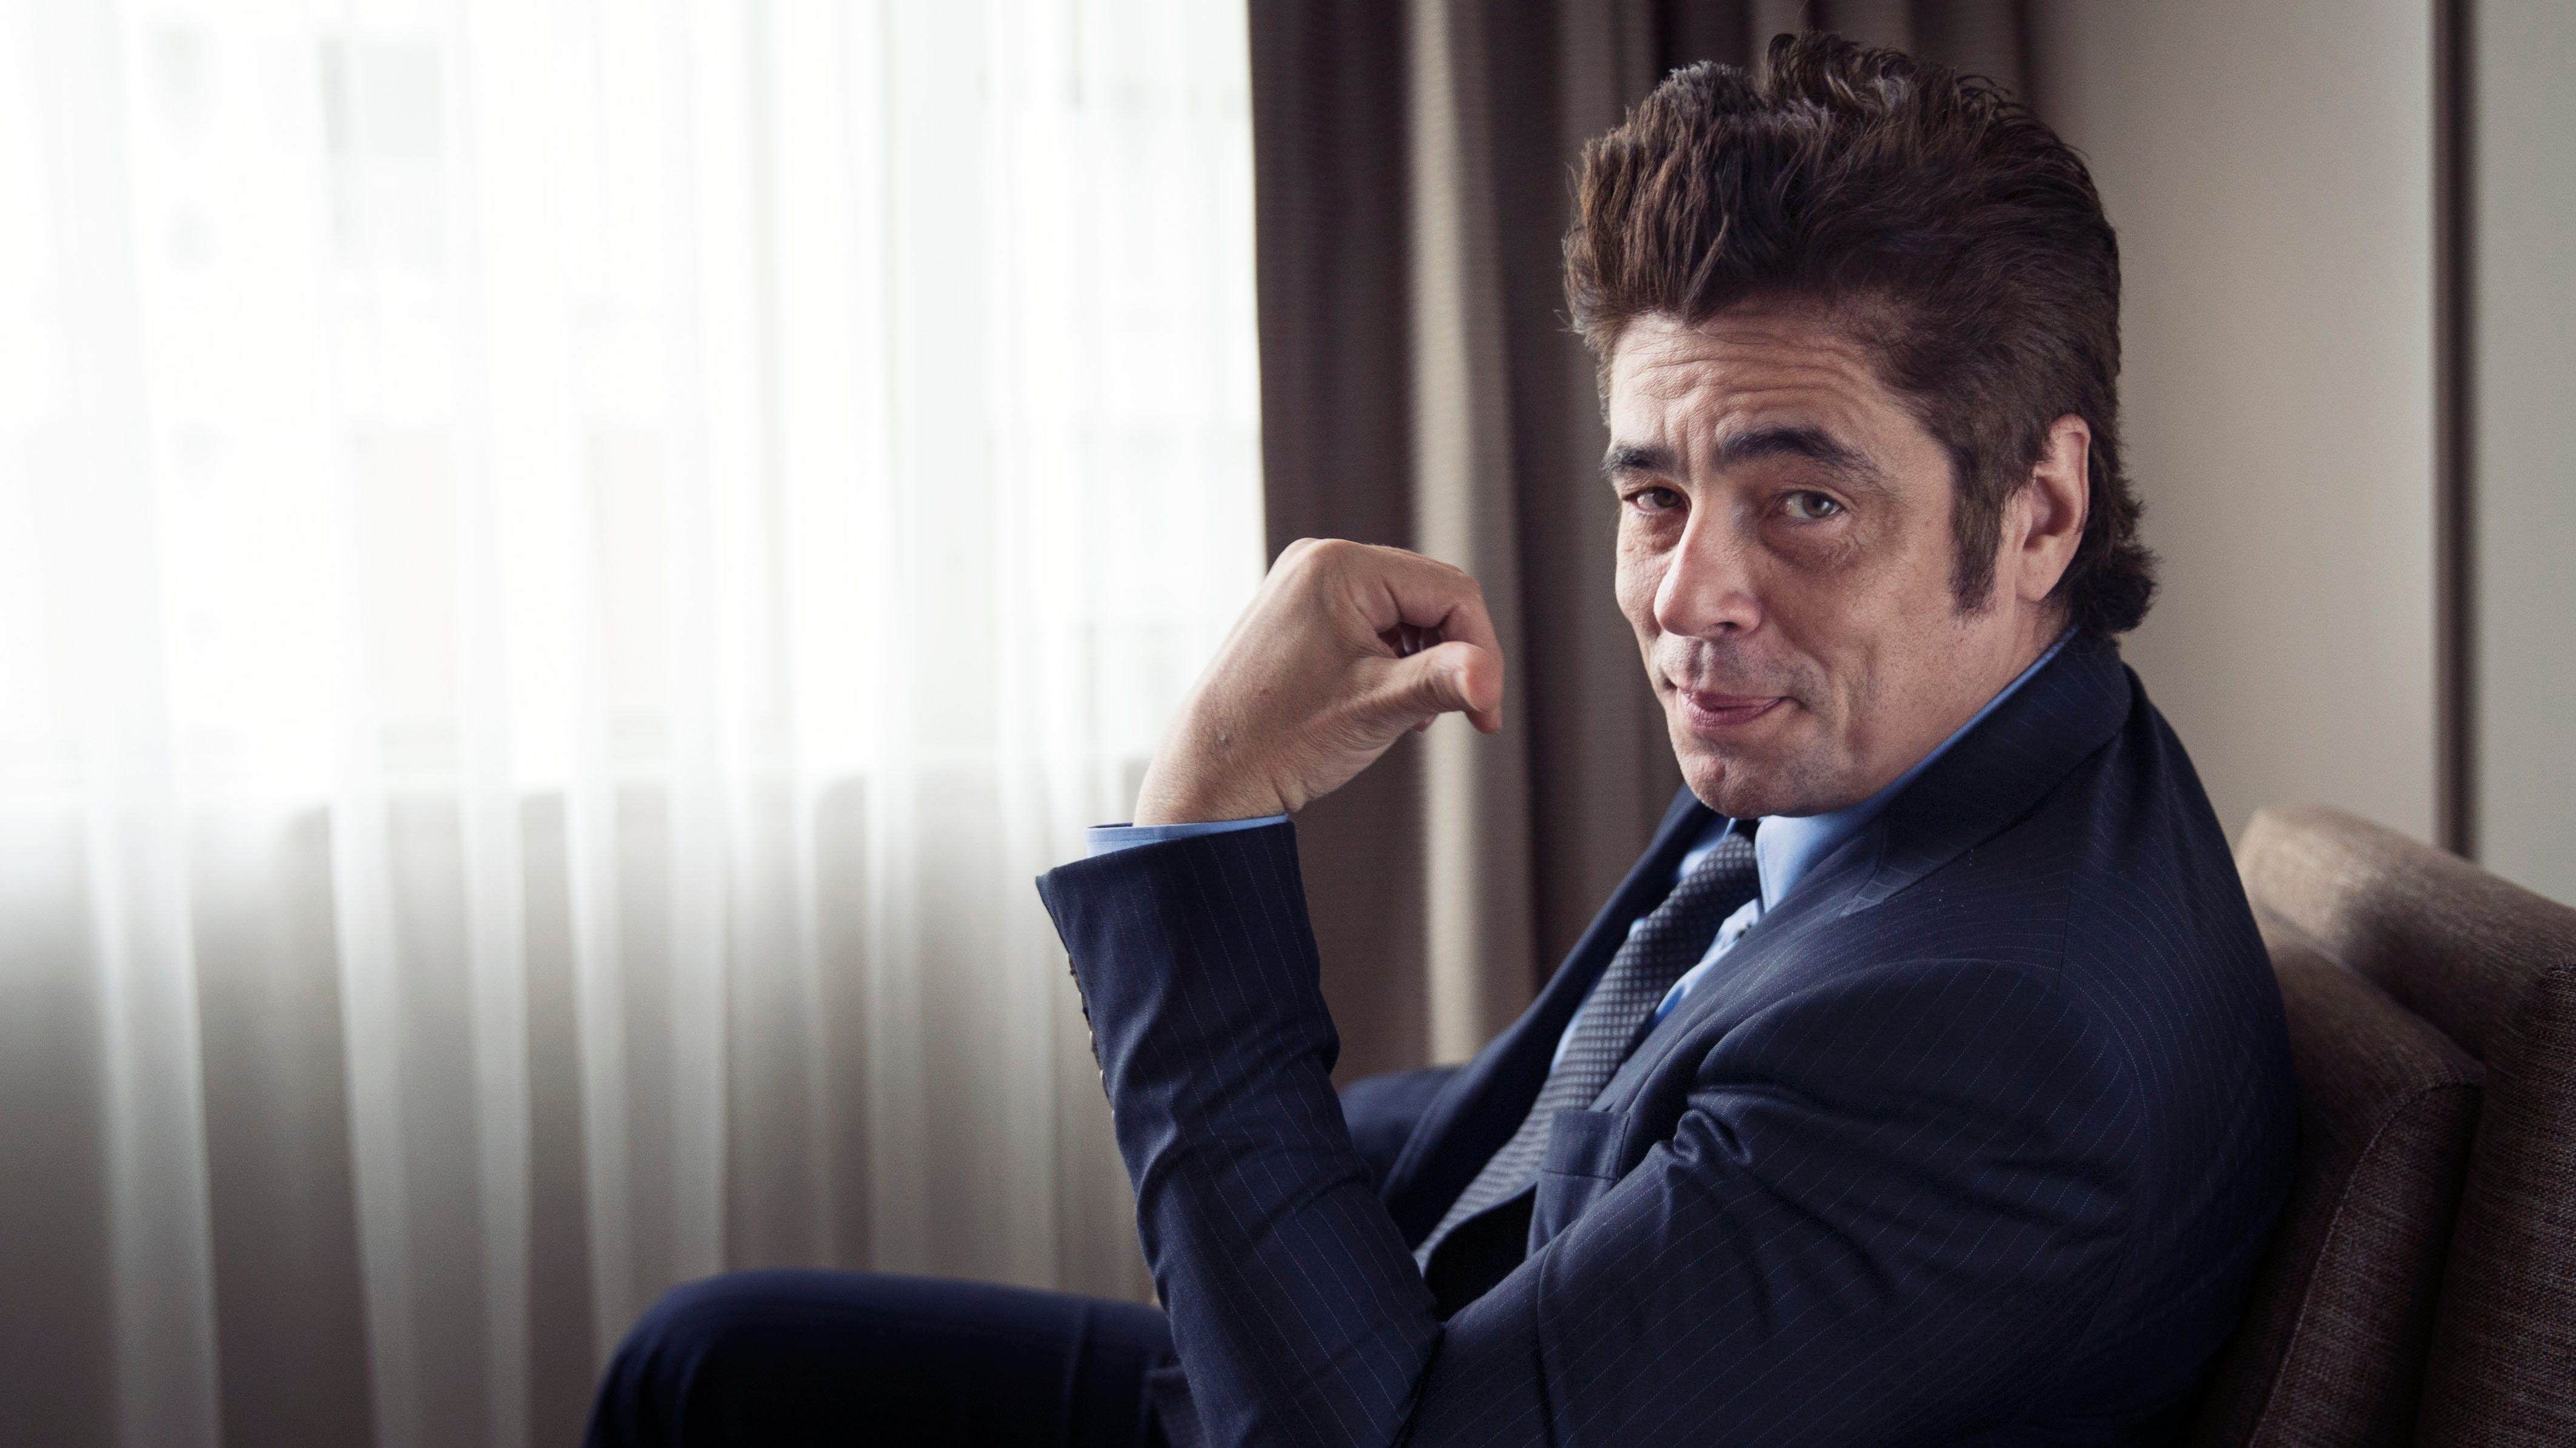 Benicio del toro signs up for another drug war tour of duty in